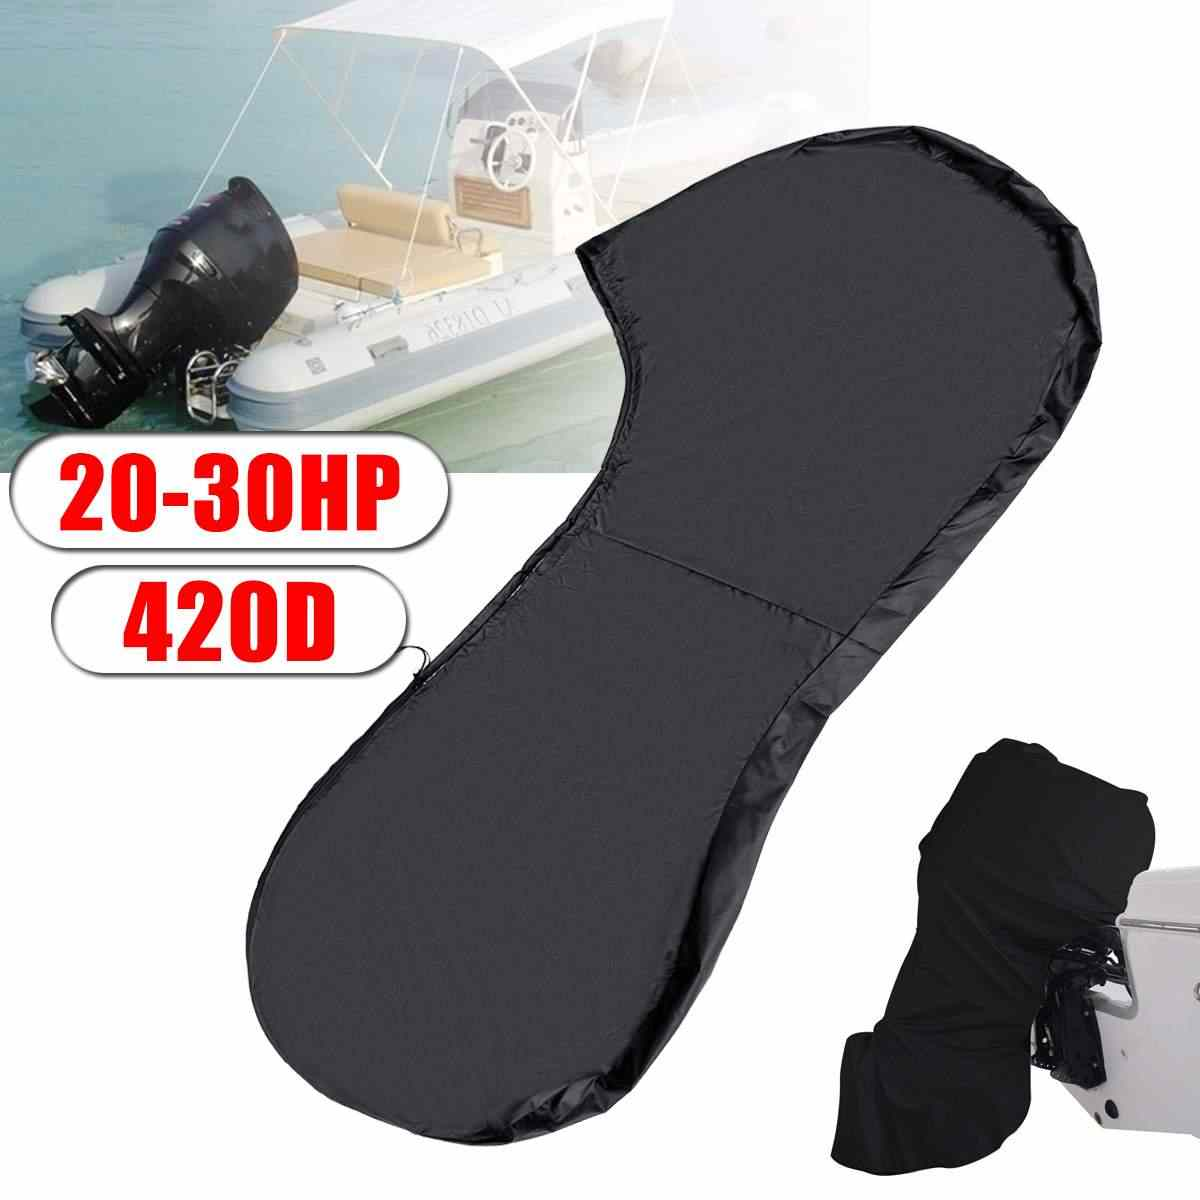 Full Outboard Engine Cover Oxford Cloth Waterproof Boat Cover BEYST Outboard Motor Cover Dust Rain UV Resistant Motor Protective Cover Trailerable Protector for Boat//Yacht//Dinghy